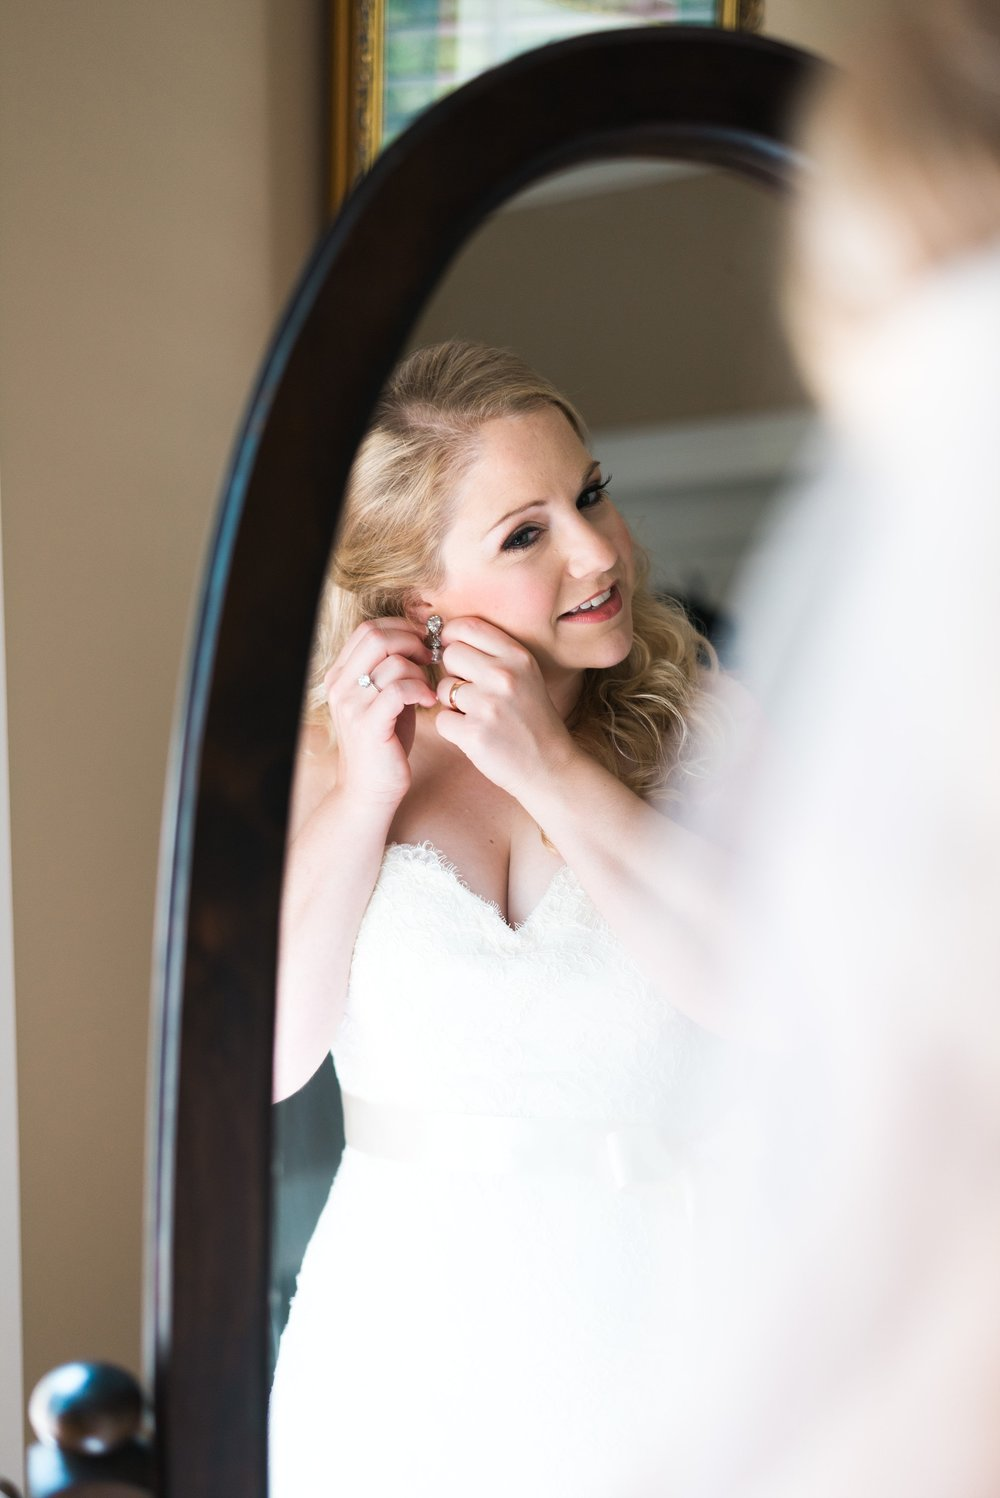 Bride getting ready | Kyle & Erin | Scarbrough Wedding | Children's Harbor | Laura Wilkerson Photography